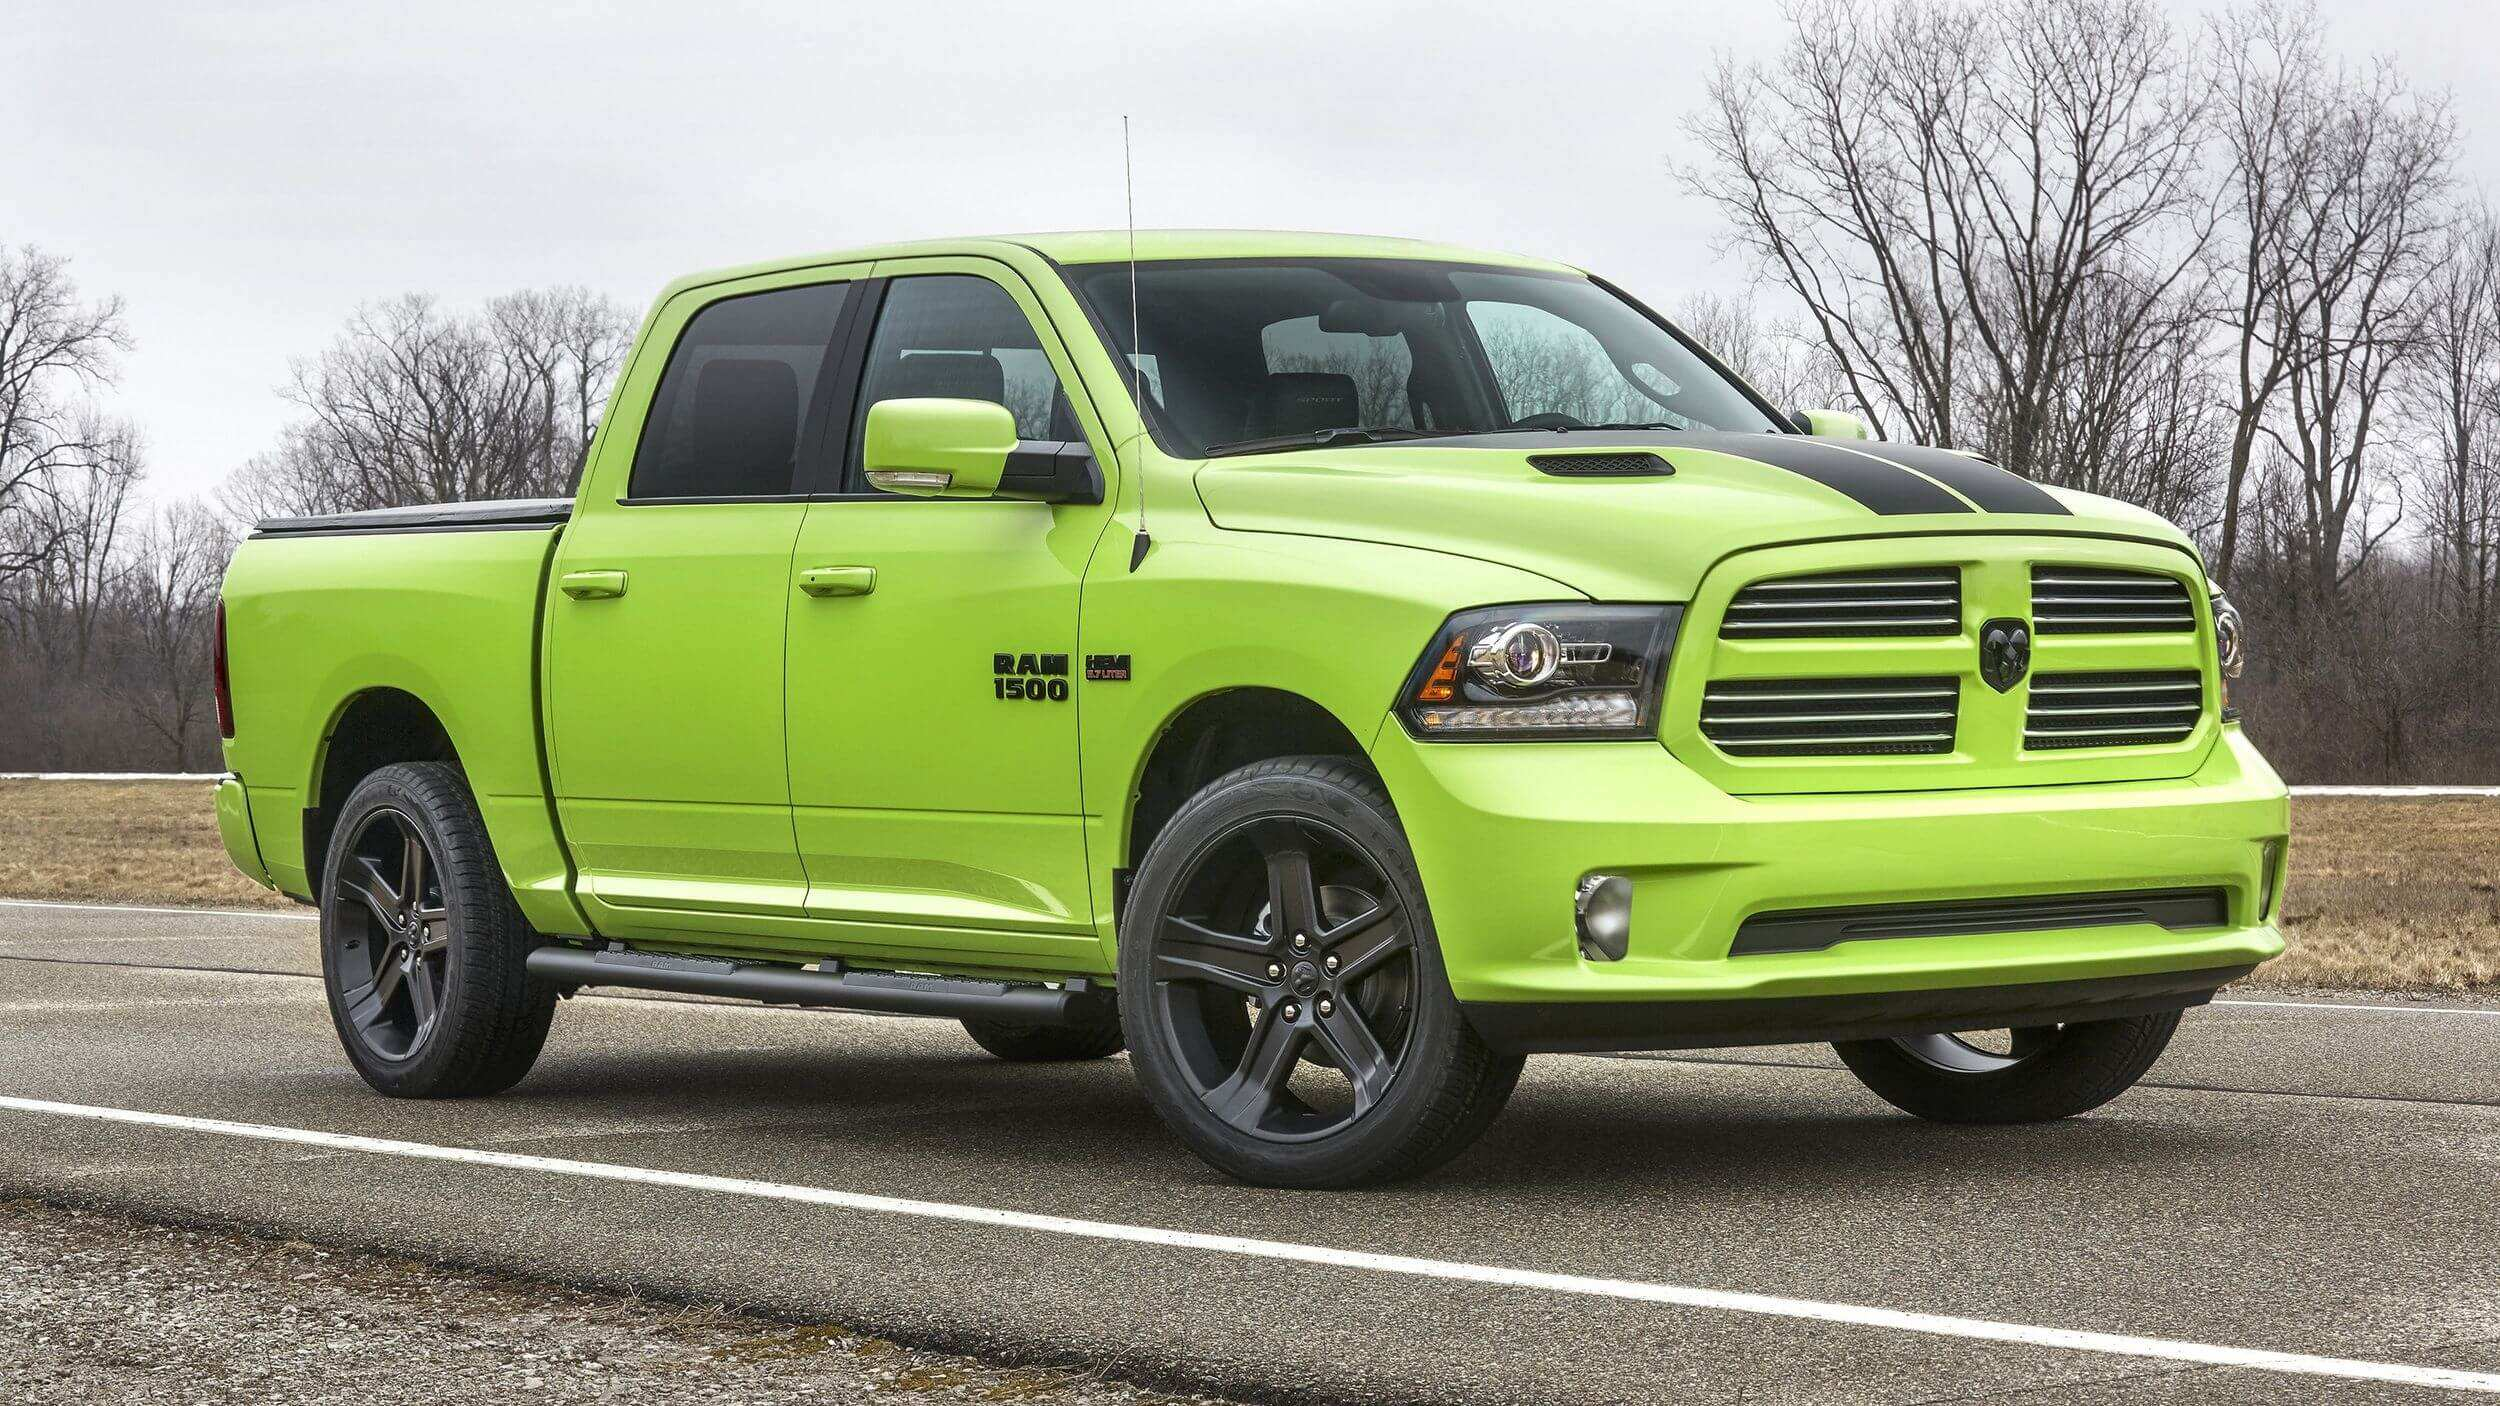 49 New The Dodge 2019 Diesel New Release Overview by The Dodge 2019 Diesel New Release